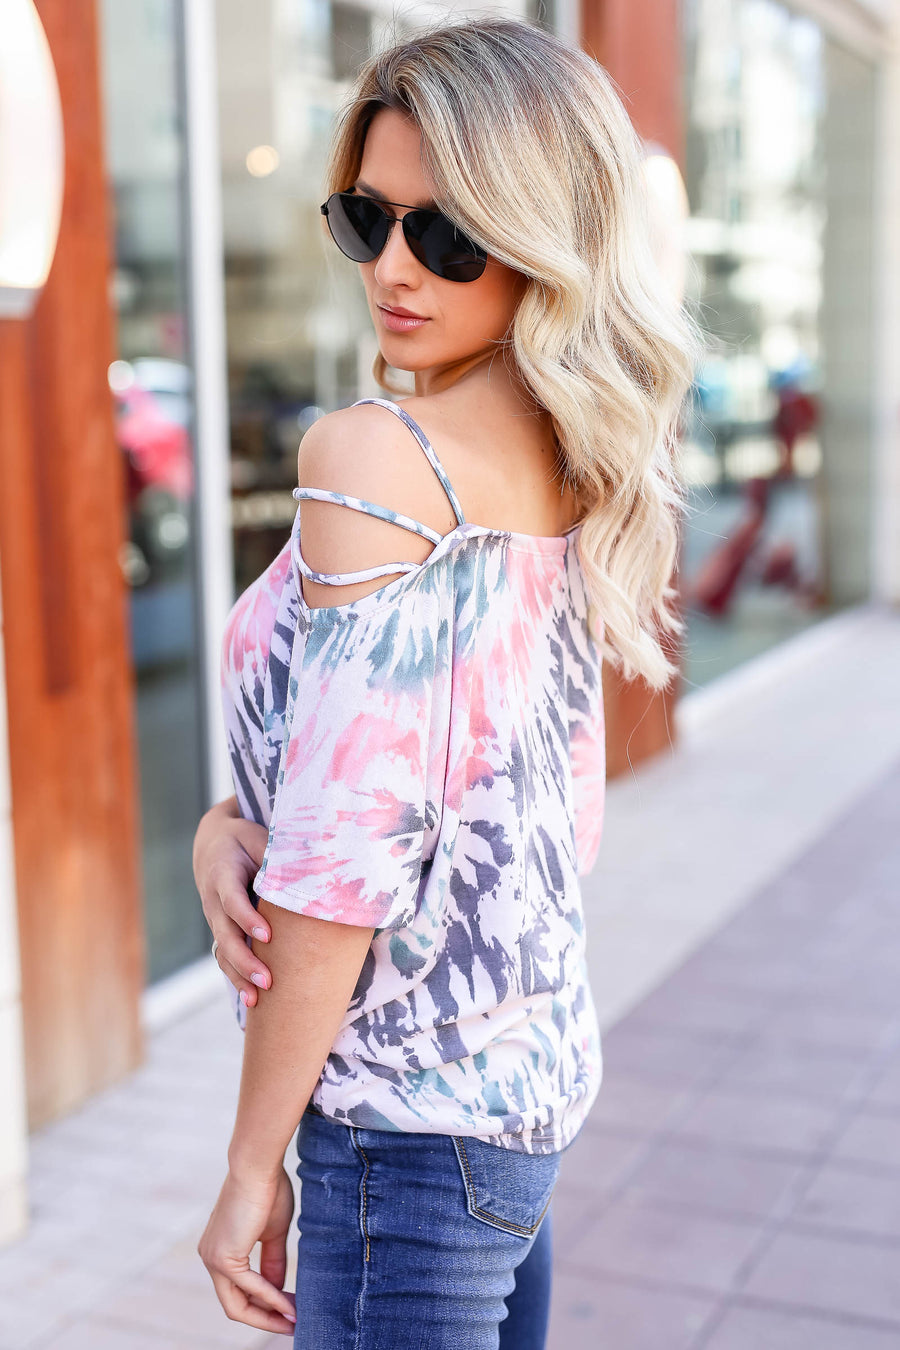 Let's Hit The Road Tie Dye Top - Blush Multi closet candy women's trendy strappy cold shoulder top front